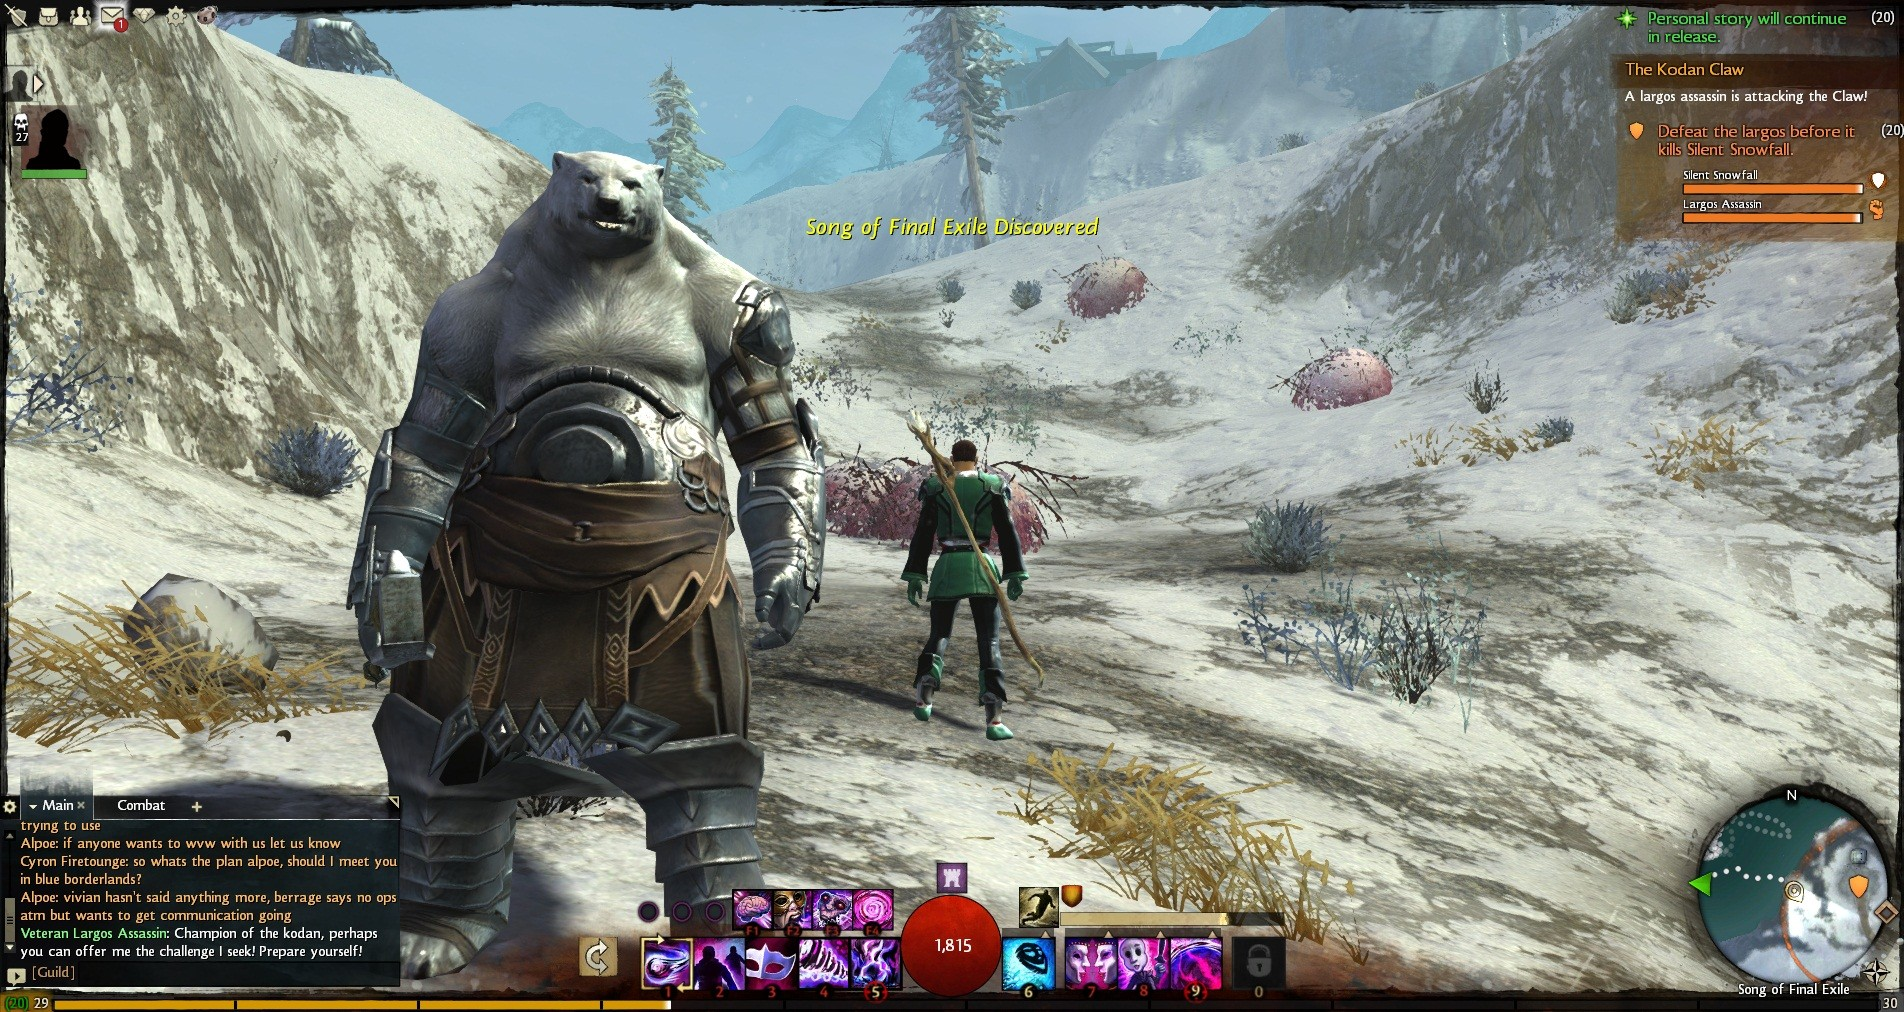 Guild Wars 2 - The Kodan, Norn bear people things. I think. I forget their story.